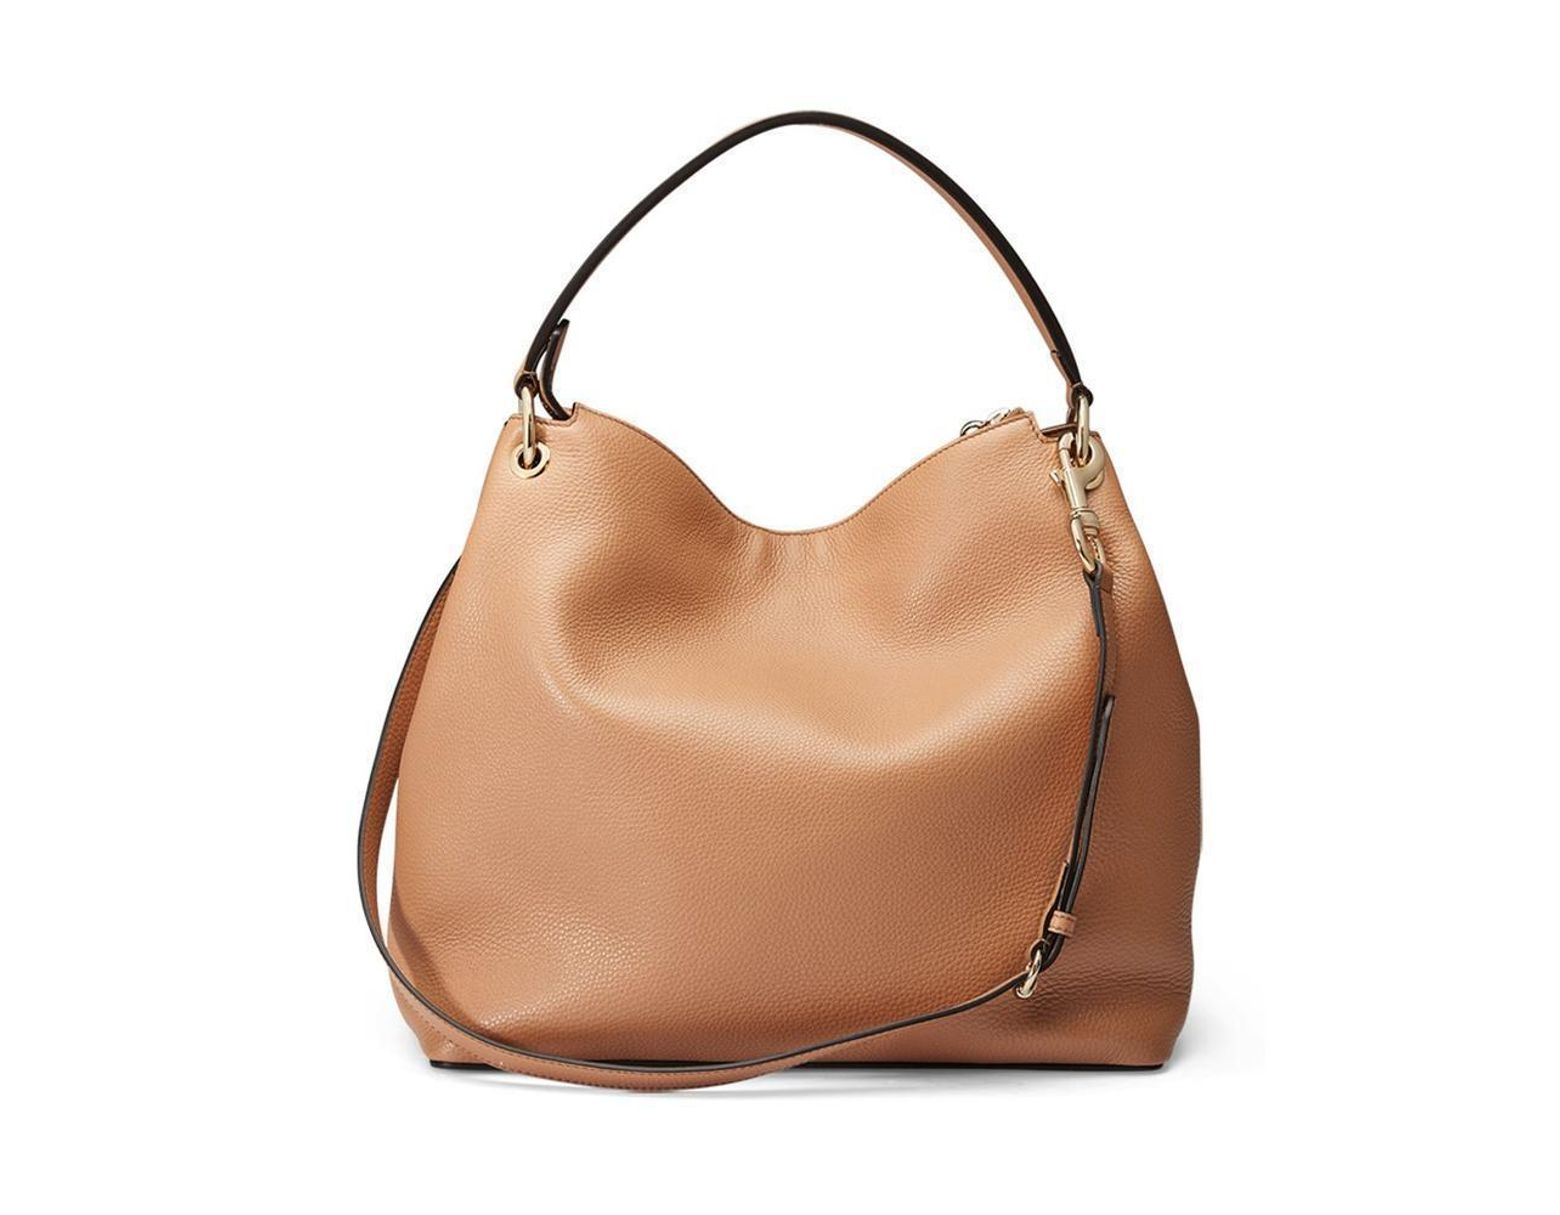 ea0f0c9b54a4 Gucci Soho Large Leather Cellarius Bag, Camelia in Brown - Lyst